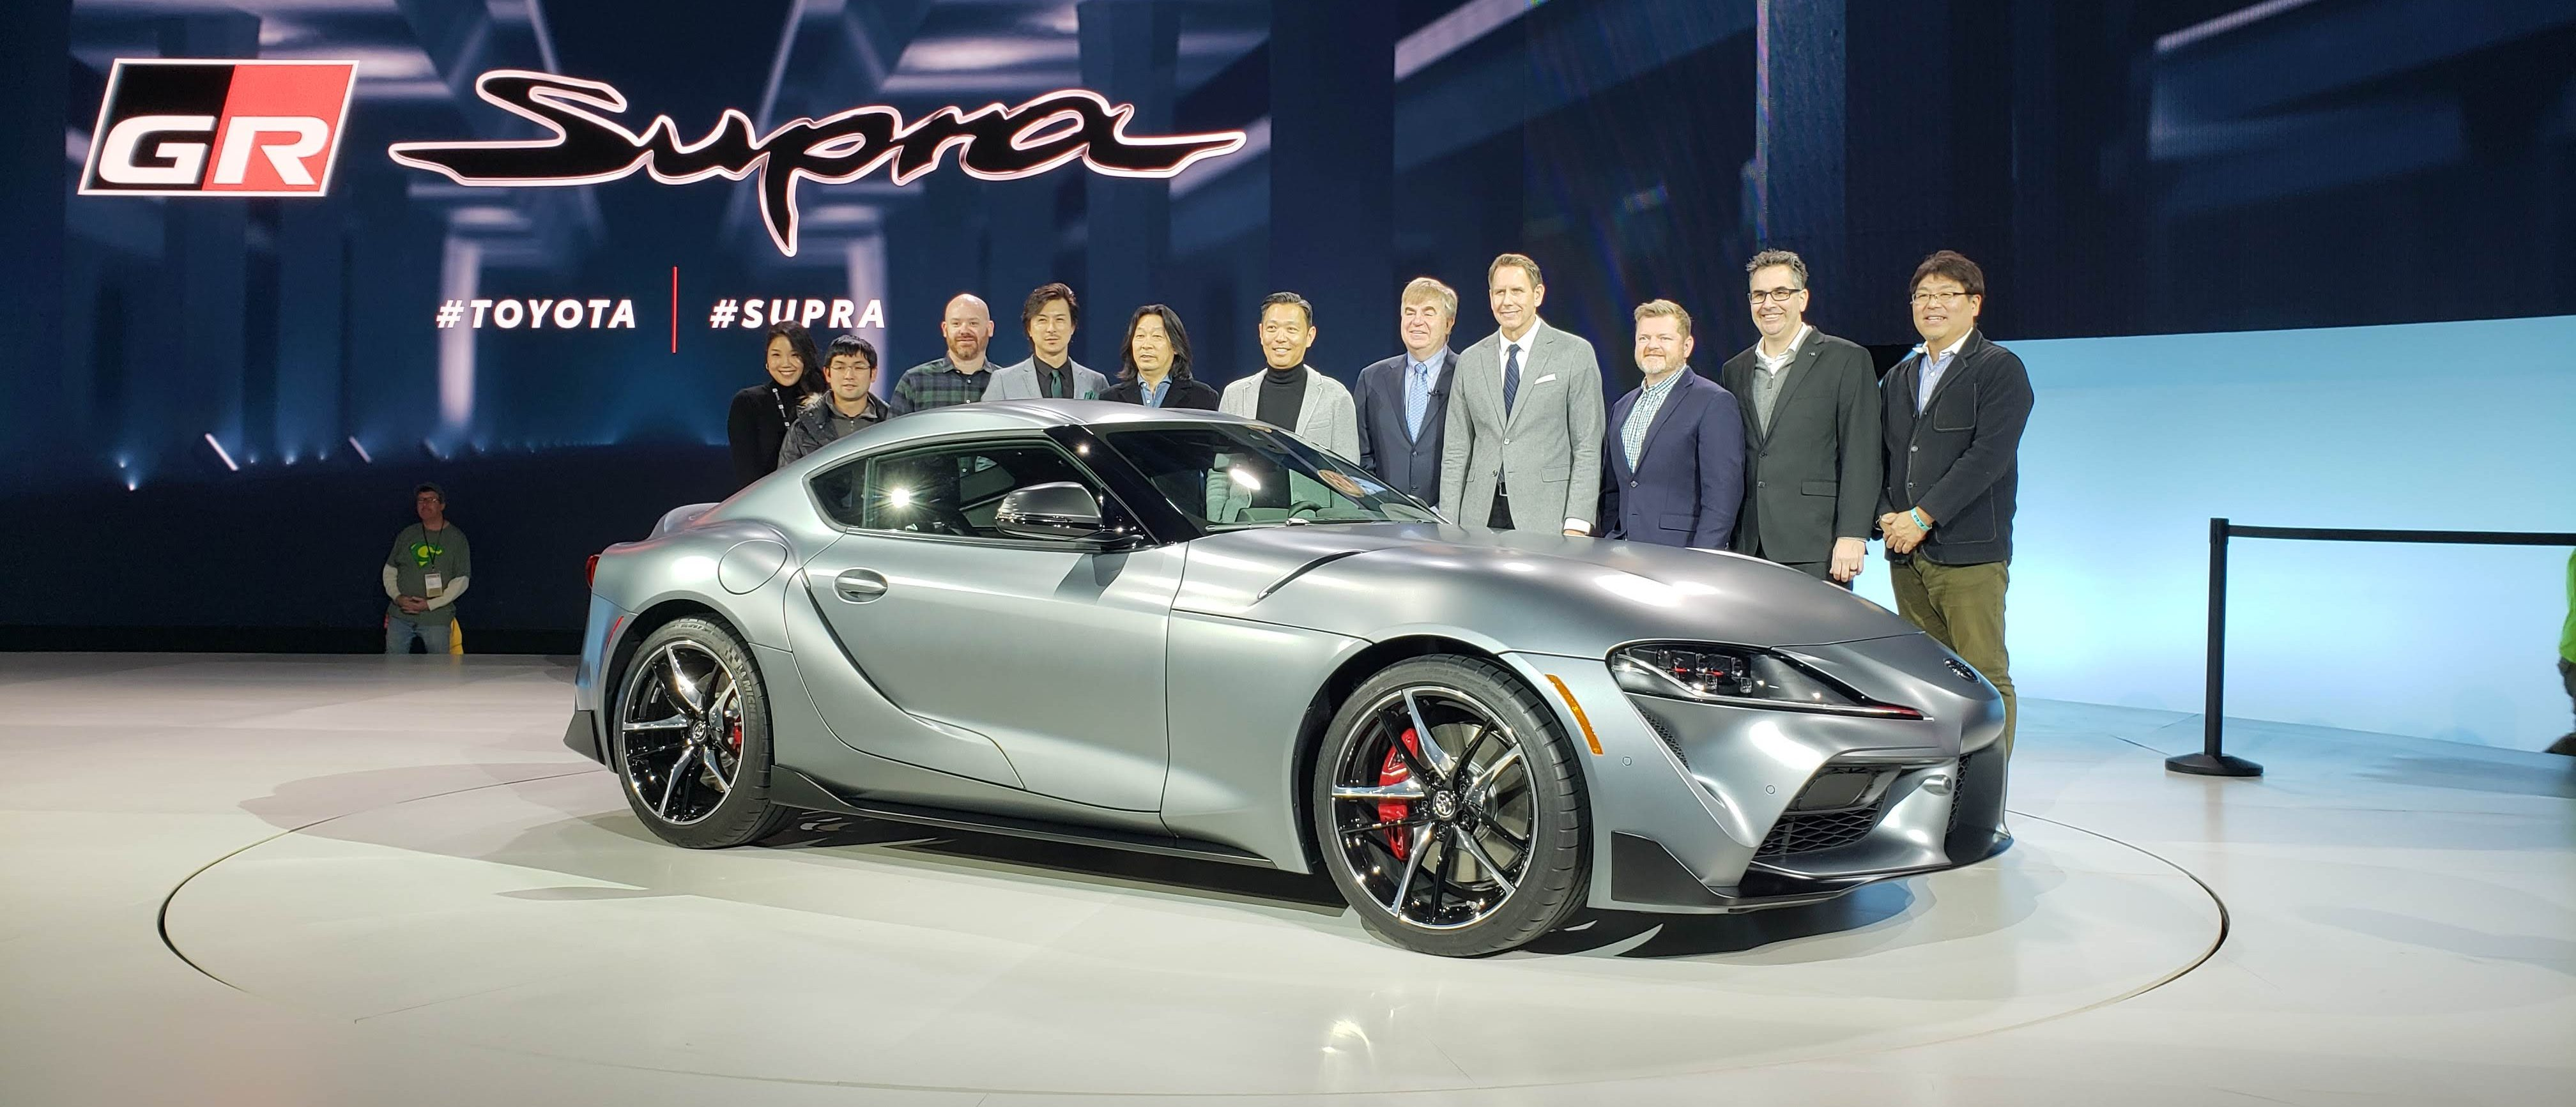 The Toyota Supra Is Here And Things Are Going To Be Alright Drivermod